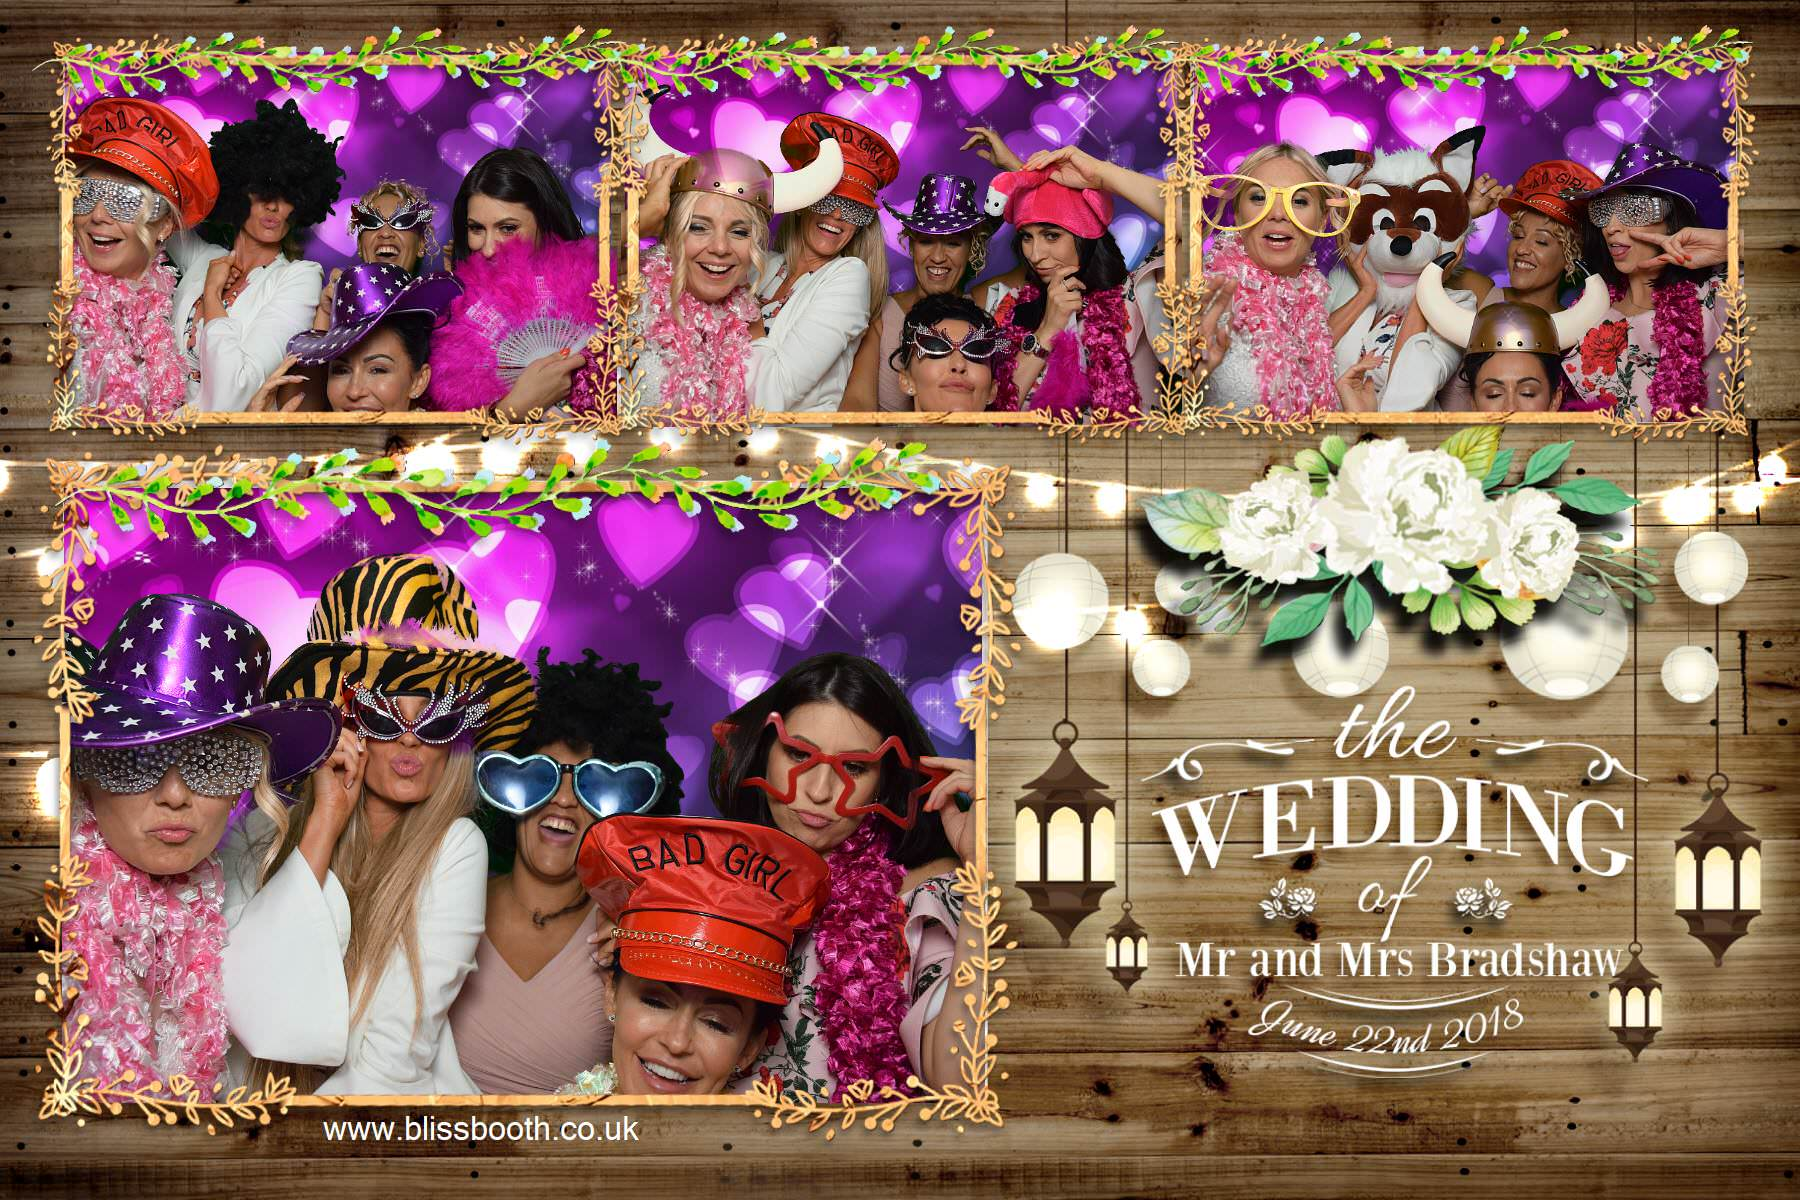 Mr and Mrs Bradshaw - The Priest House Derby - Photo Booth